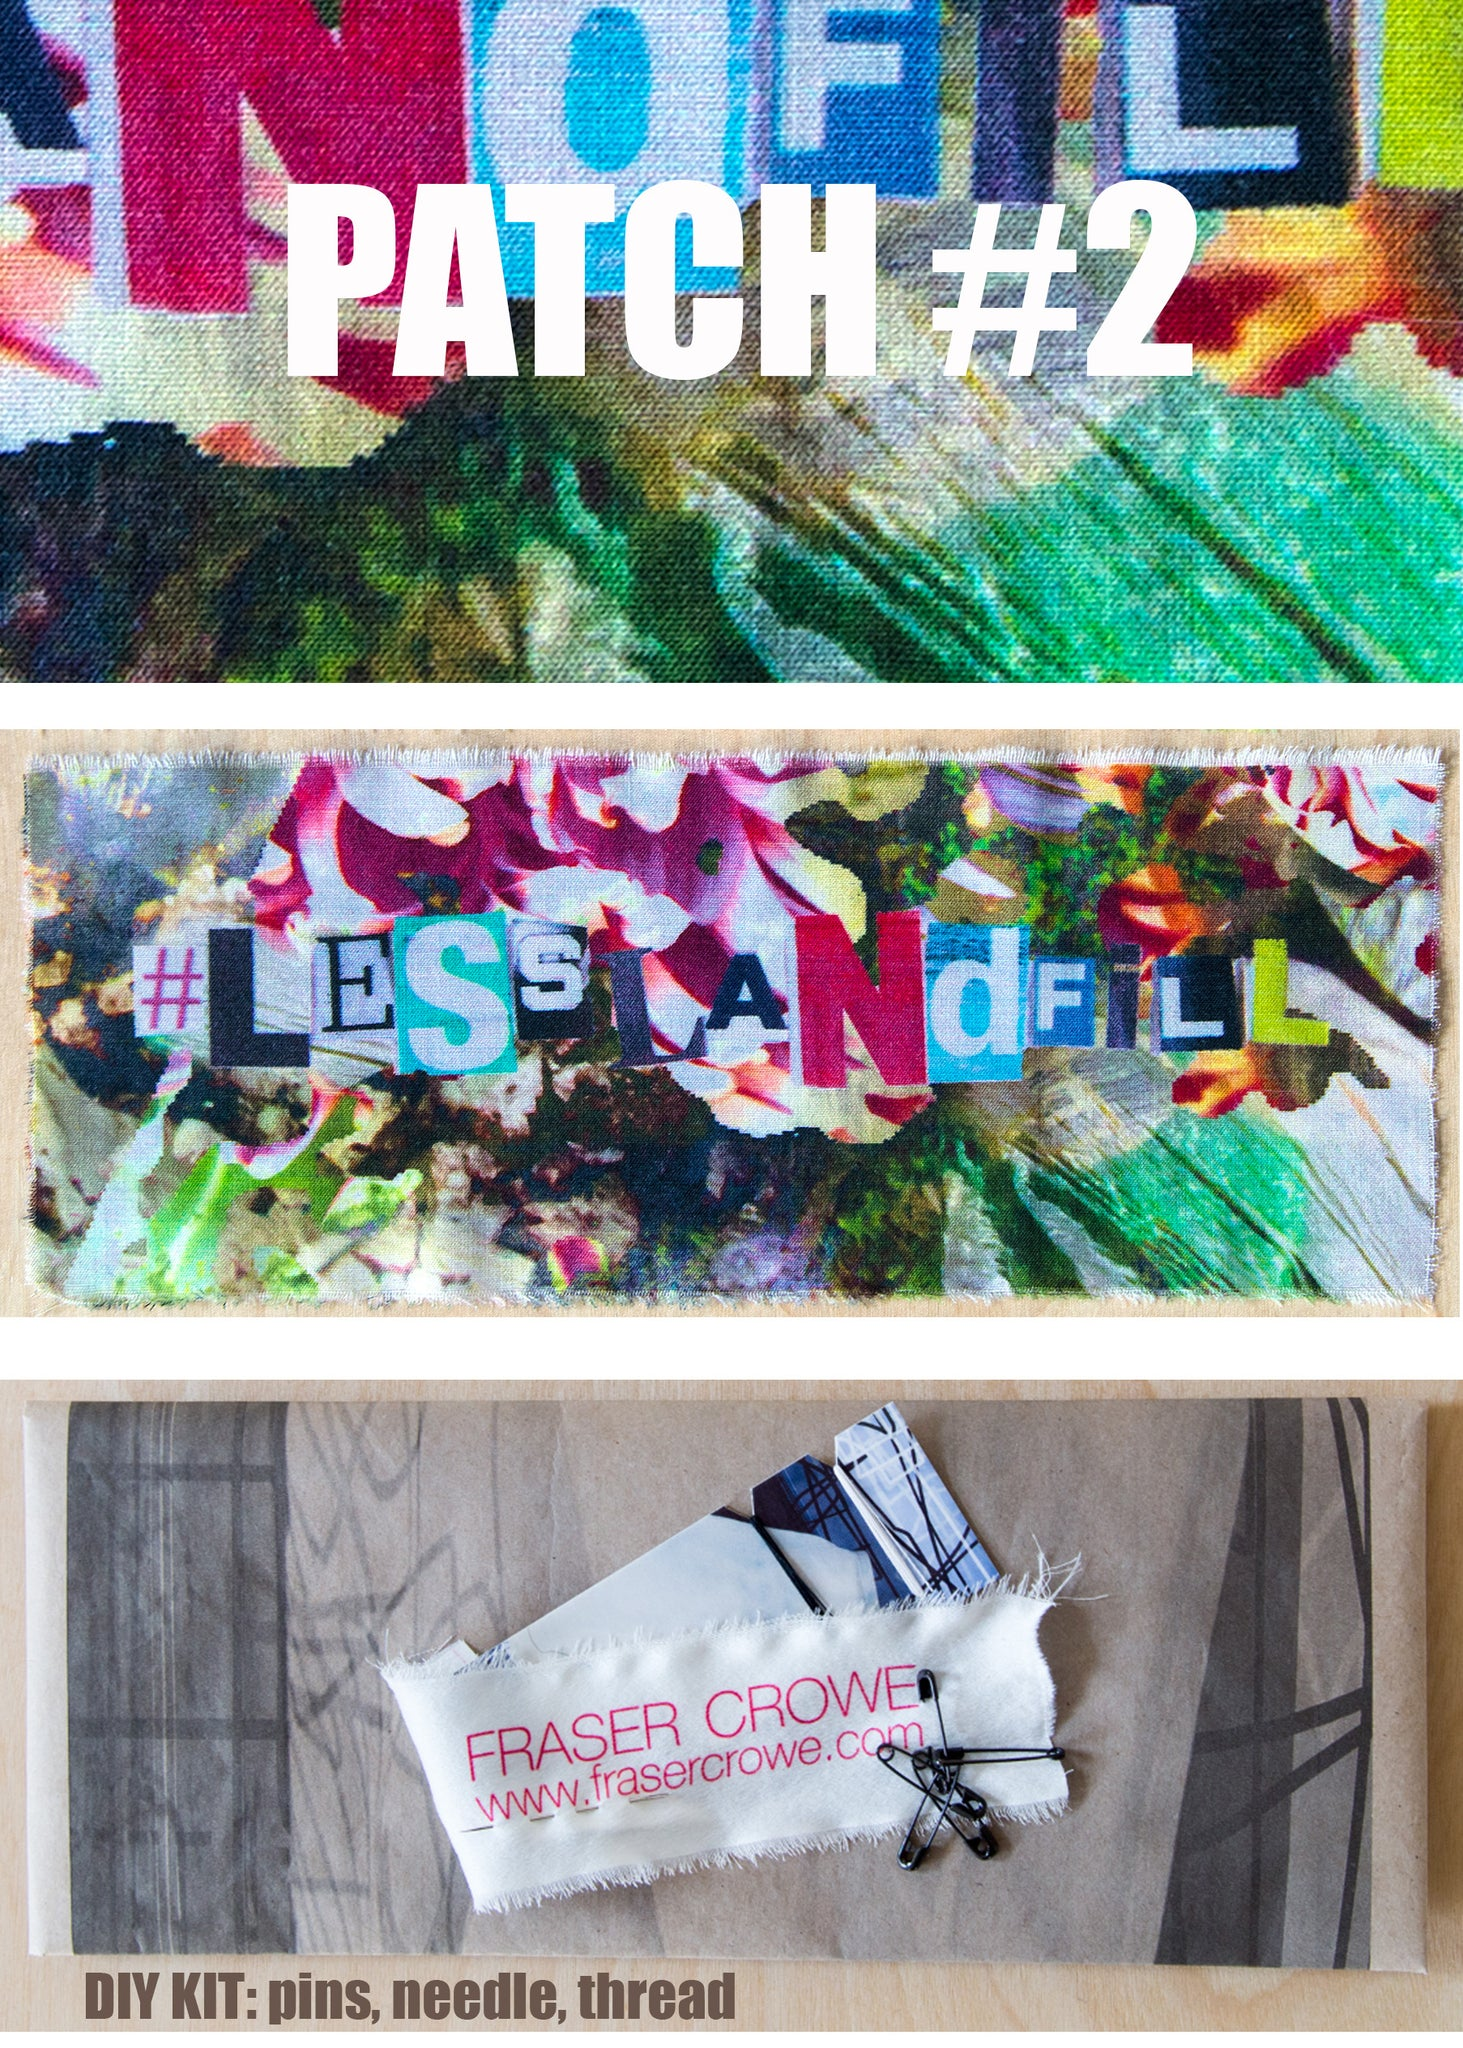 #lesslandfill Patch 2 details -ethical fashion, sustainable fashion, designer clothes, plus size clothing, textile print clothing, luxury online fashion, slow fashion